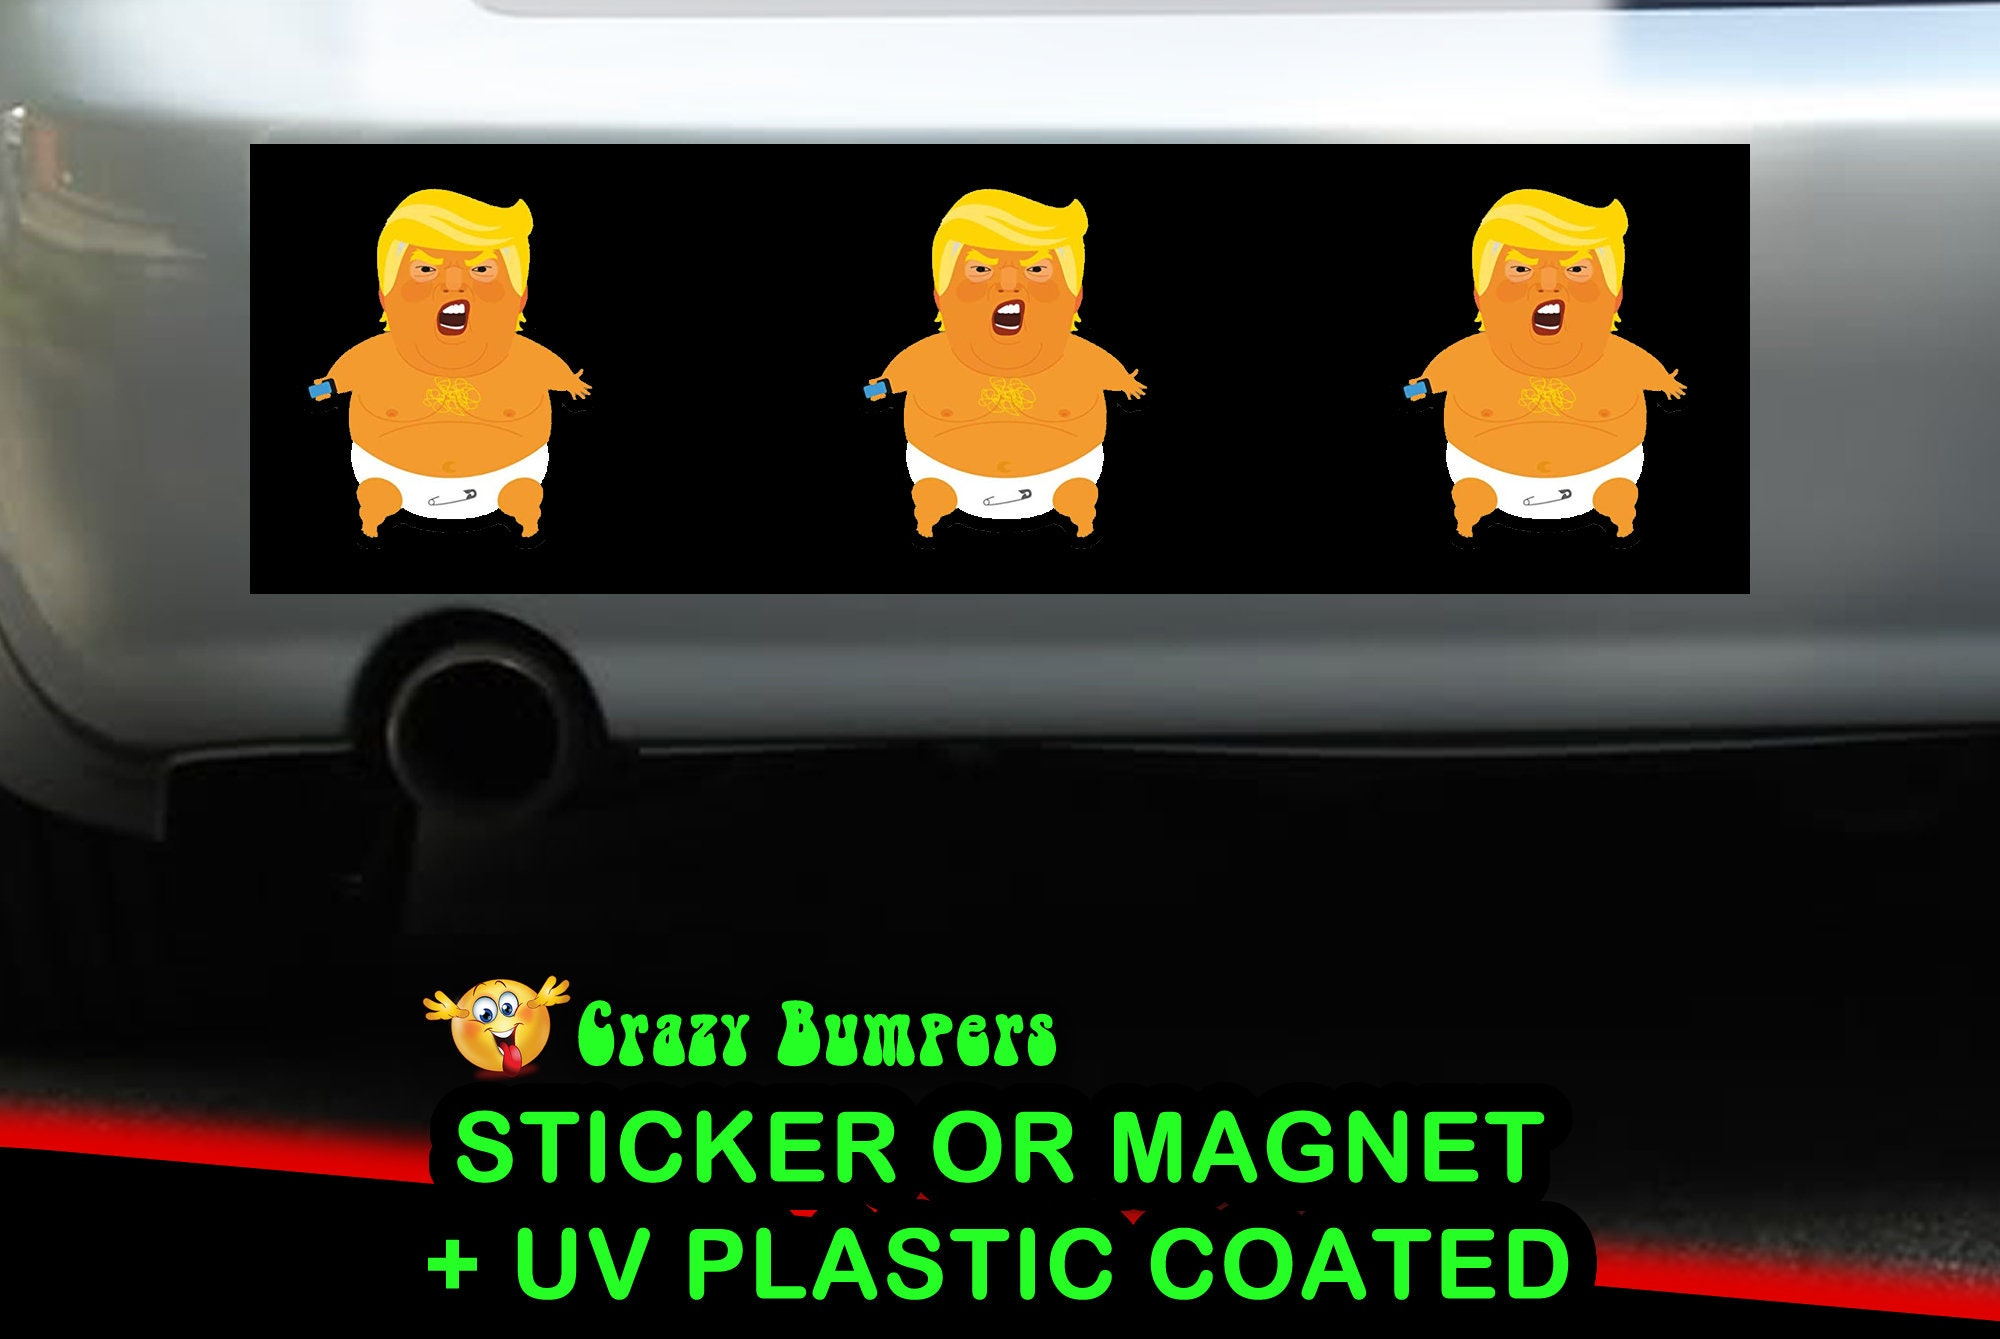 CAD$7.99 - Trump Baby Bumper Sticker 10 x 3 UV Plastic Coated or Magnetic Bumper Sticker Available